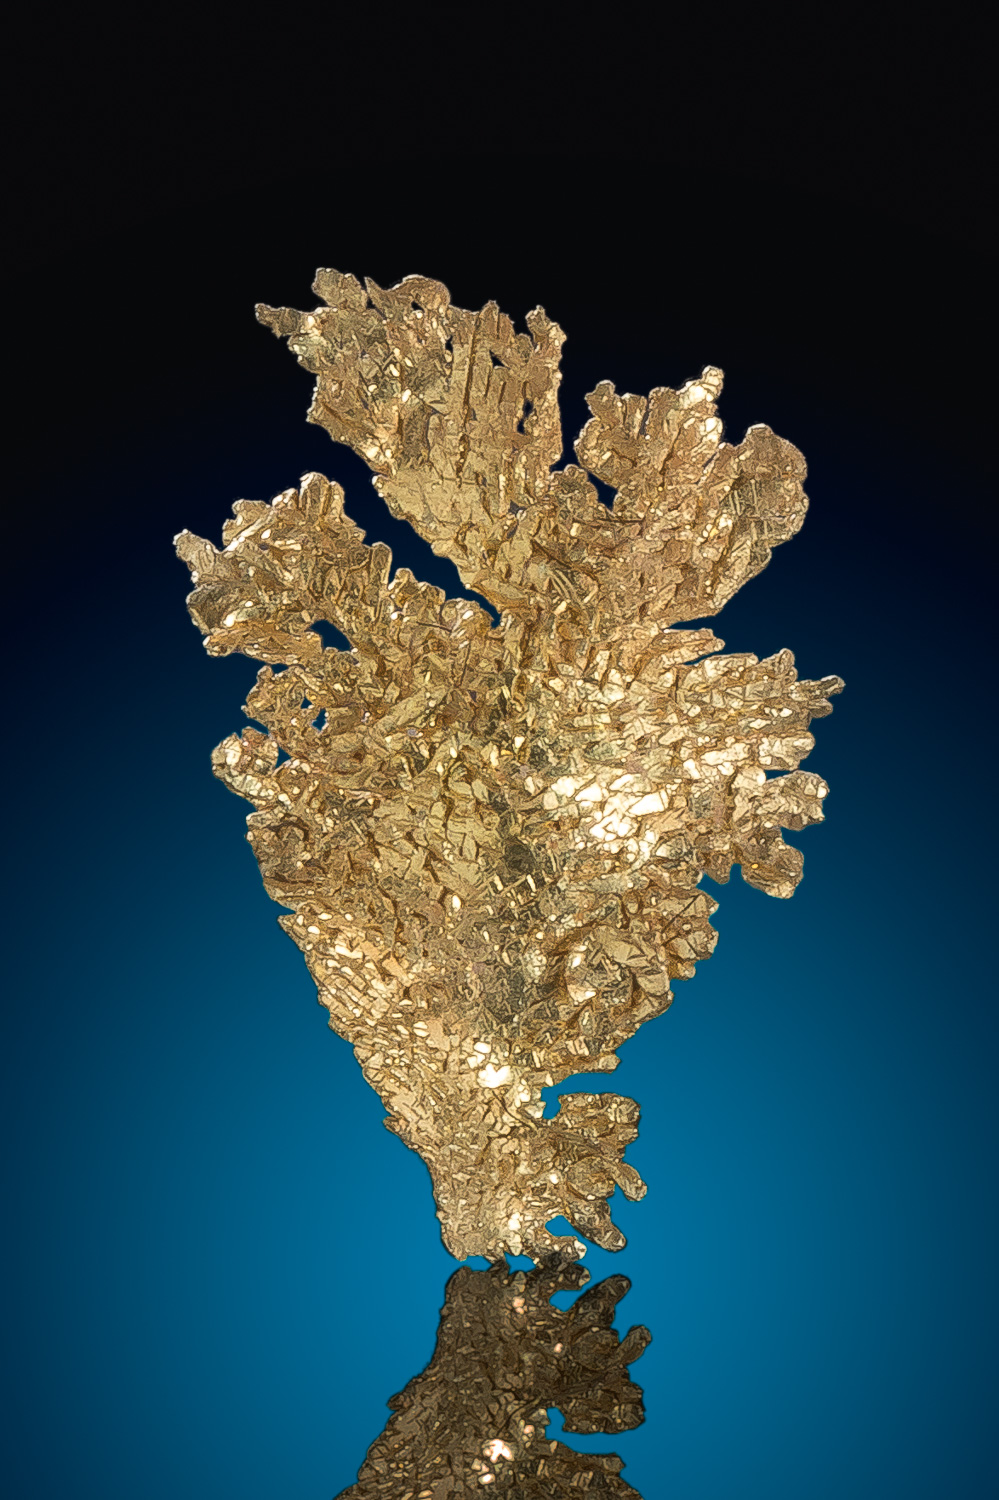 Magnificent Dendritic Leaf Gold Crystal - Round Mountain